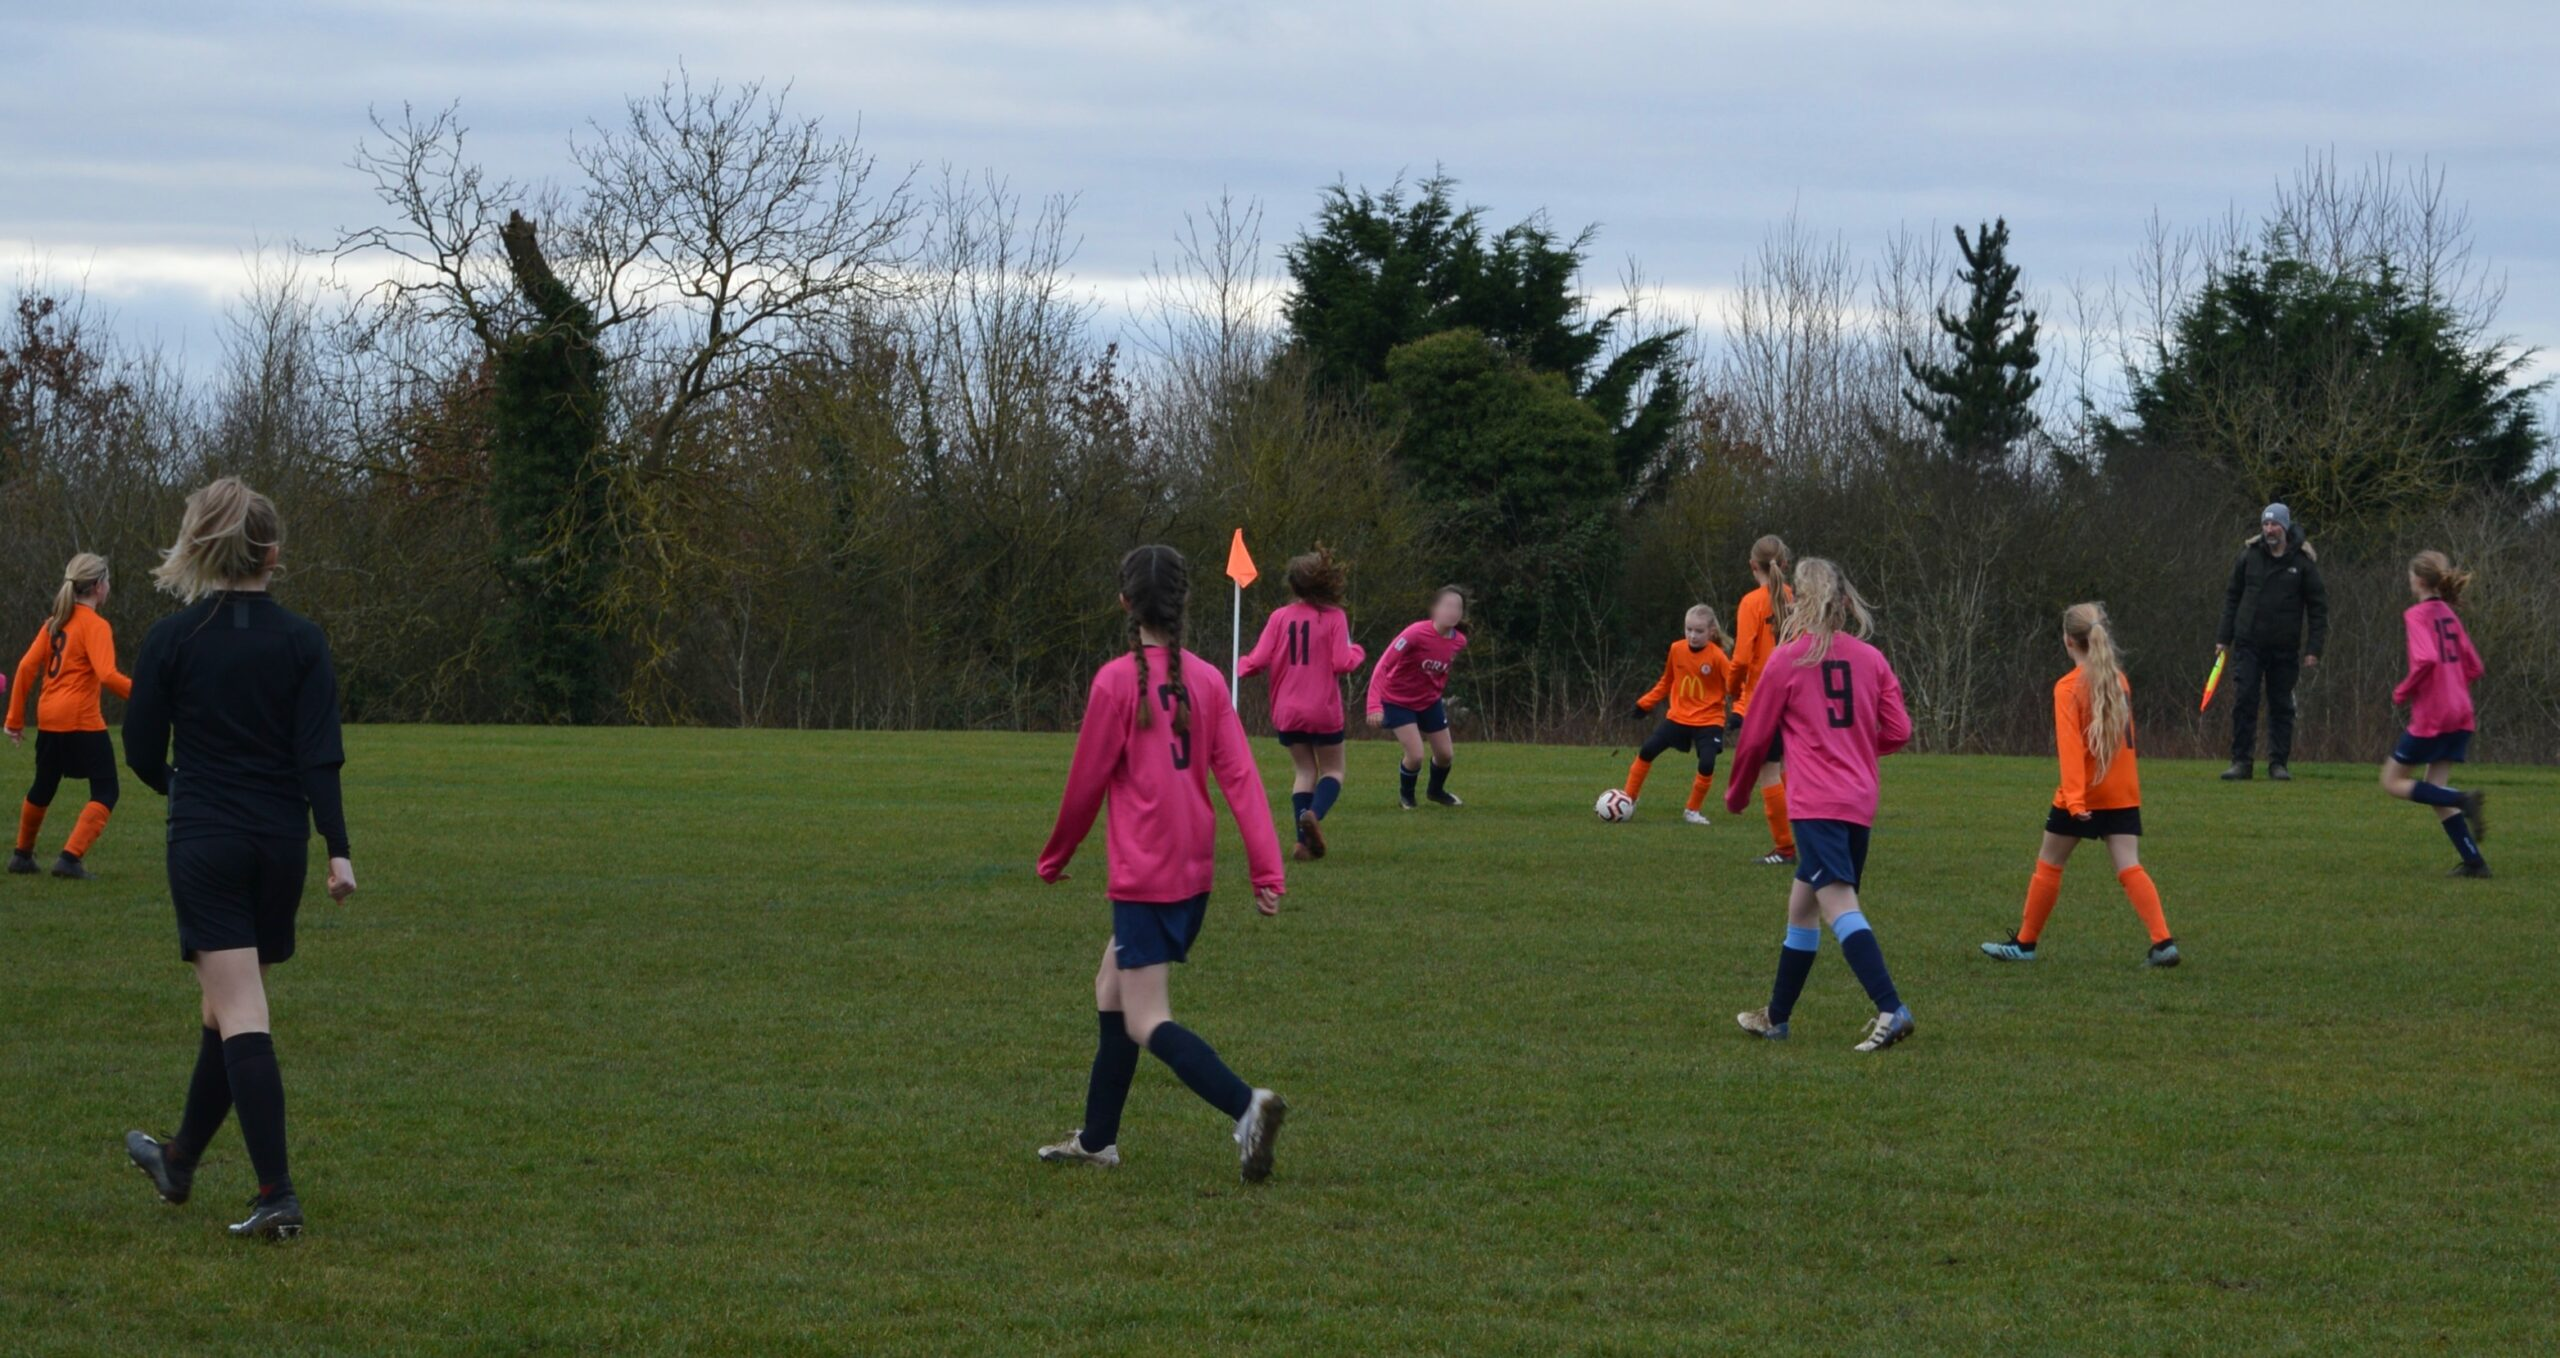 Rugby Borough Girls U12s v Asfordby Amateurs U12s - Match Photos